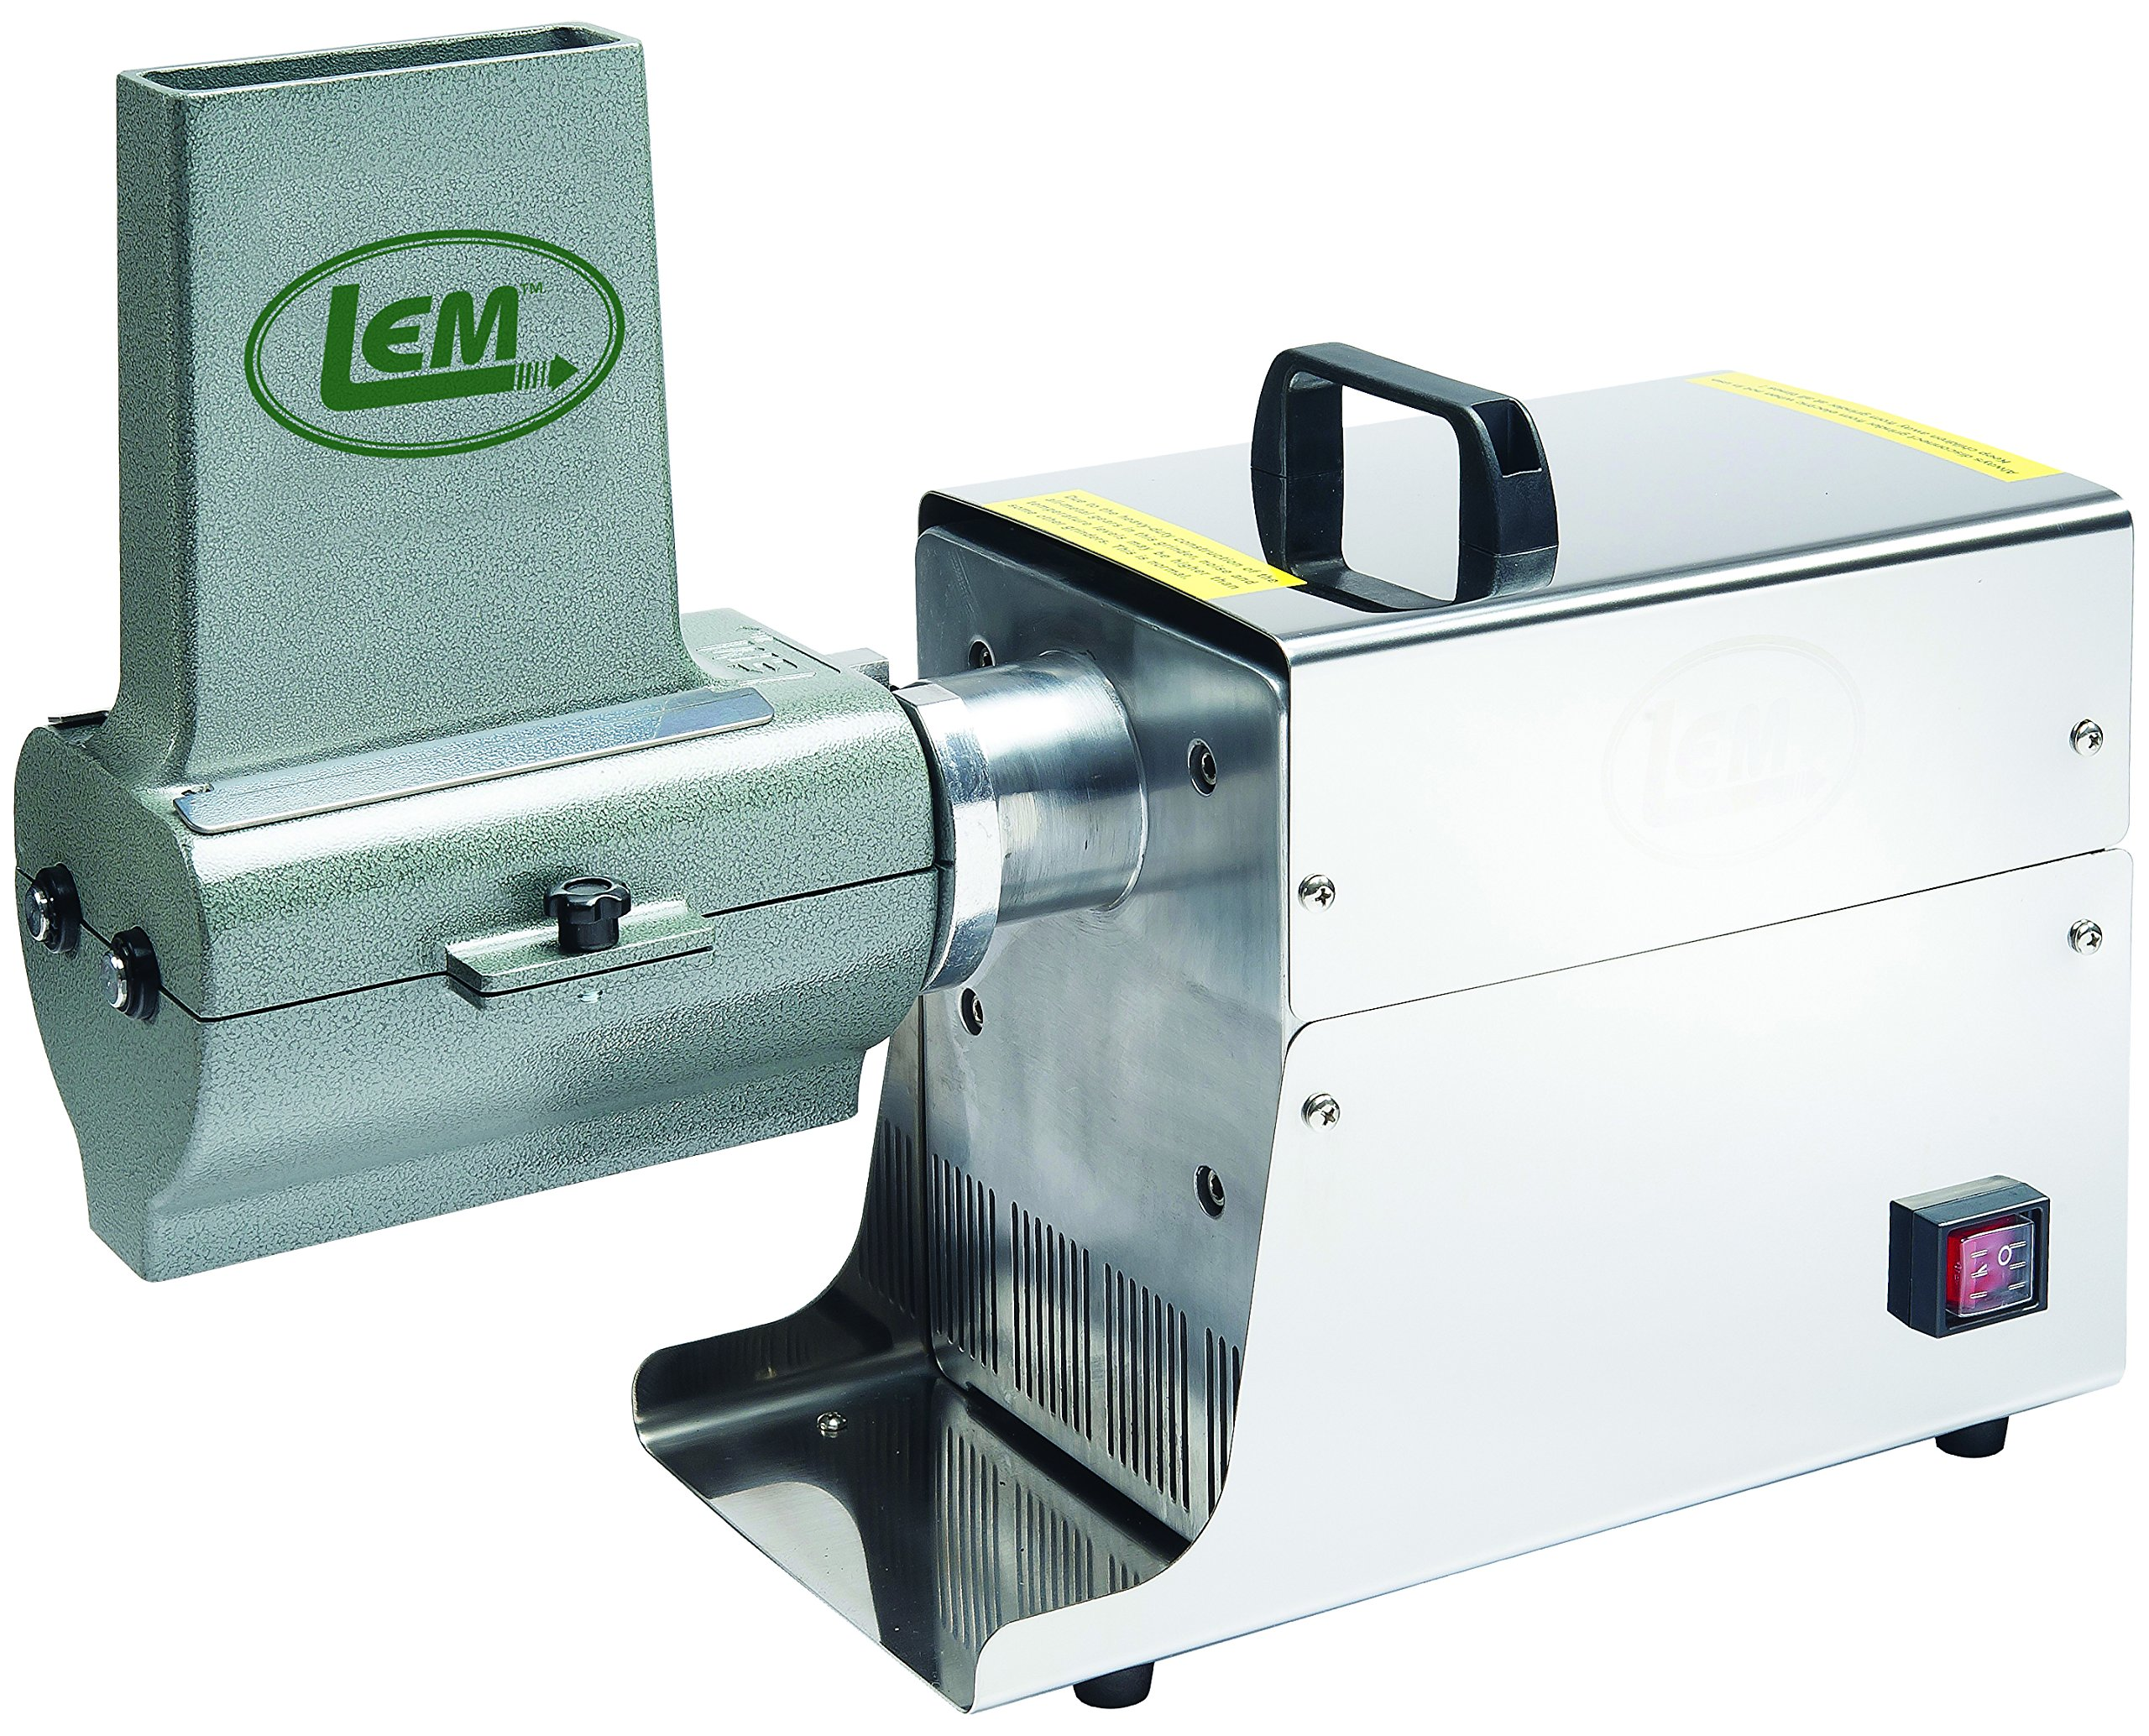 LEM Products 602TJ Electric 2-in-1 Jerky Slicer and Tenderizer by LEM